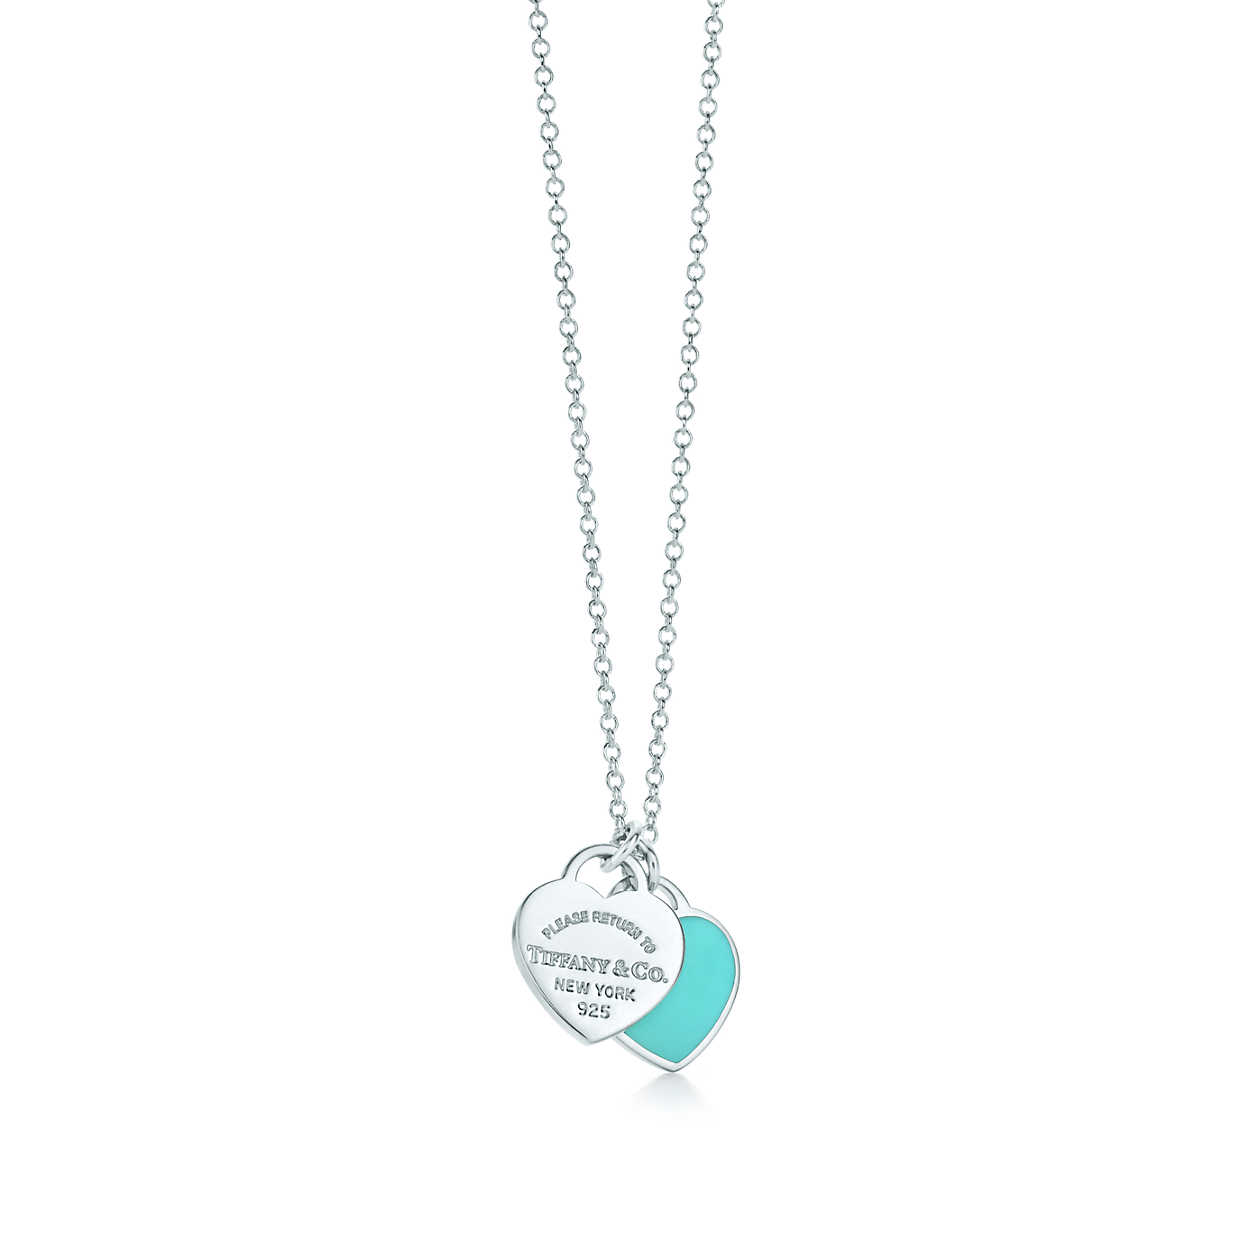 Tiffanys necklace $125.00  Every girl dreams of receiving a little blue box at some point of their life. This was one of the first gifts my boyfriend ever got me and I still wear it every day 3 and a half years later! Seriously you can not go wrong with this gift. As far as Tiffany jewelry goes this is pretty cheap.. i'm not kidding if you have never been to a store or website just look around the website quick haha. You could also get a more expensive one if you wanted but this one is super cute and classic.   https://www.tiffany.com/jewelry/necklaces-pendants/return-to-tiffany-mini-double-heart-tag-pendant-GRP06366?fromGrid=1&origin=browse&trackpdp=bg&fromcid=287465&trackgridpos=75